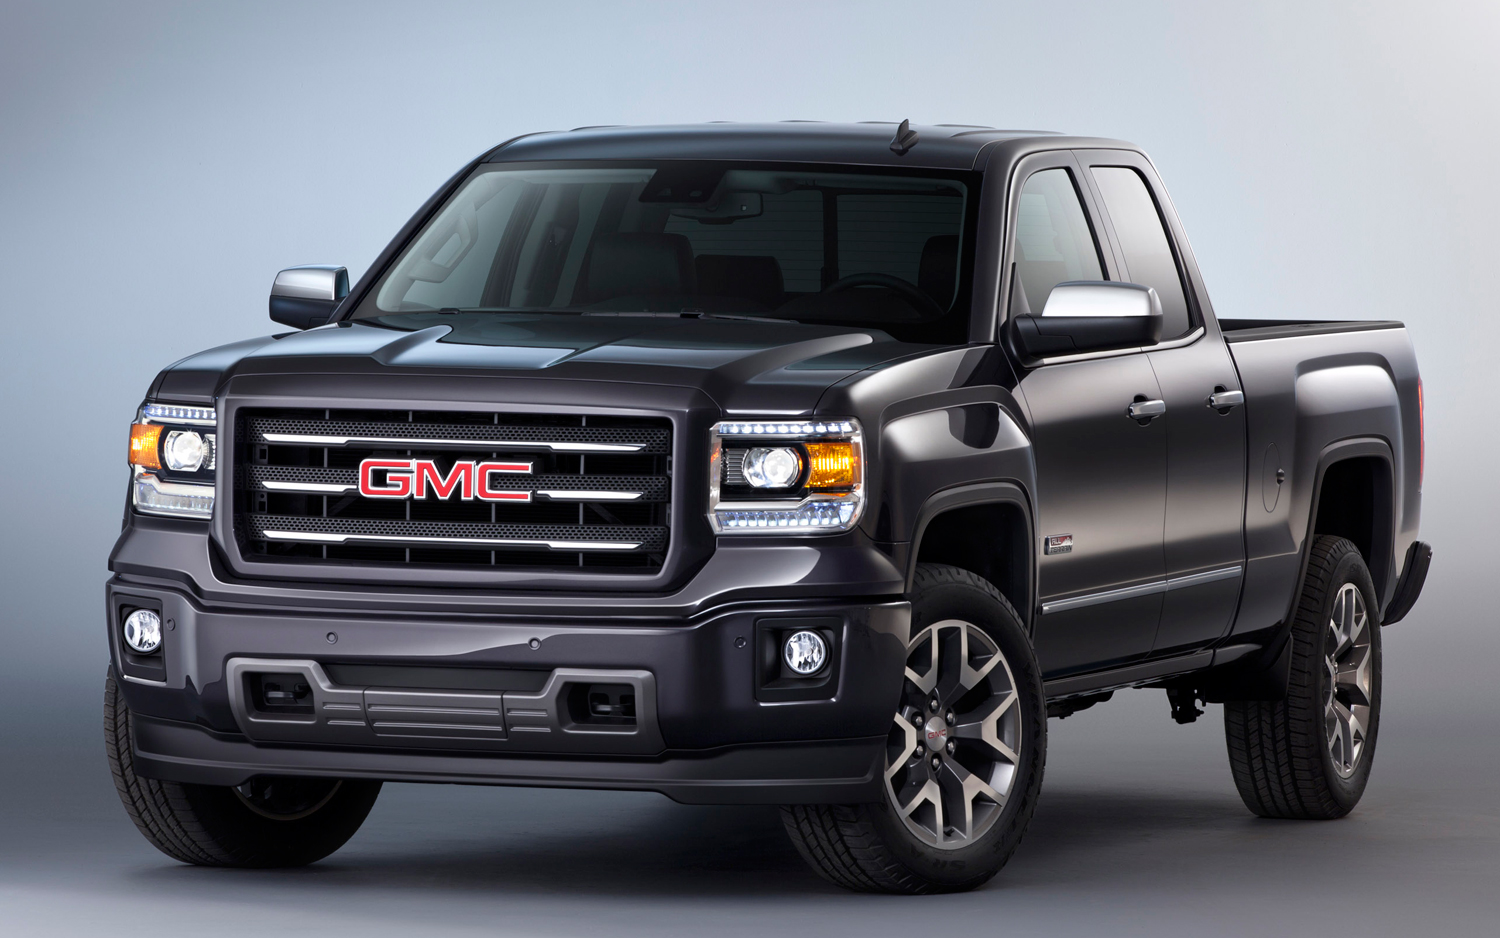 Pics Photos - The New 2015 Gmc Sierra Hd 2014 Ford Fiesta St Price And